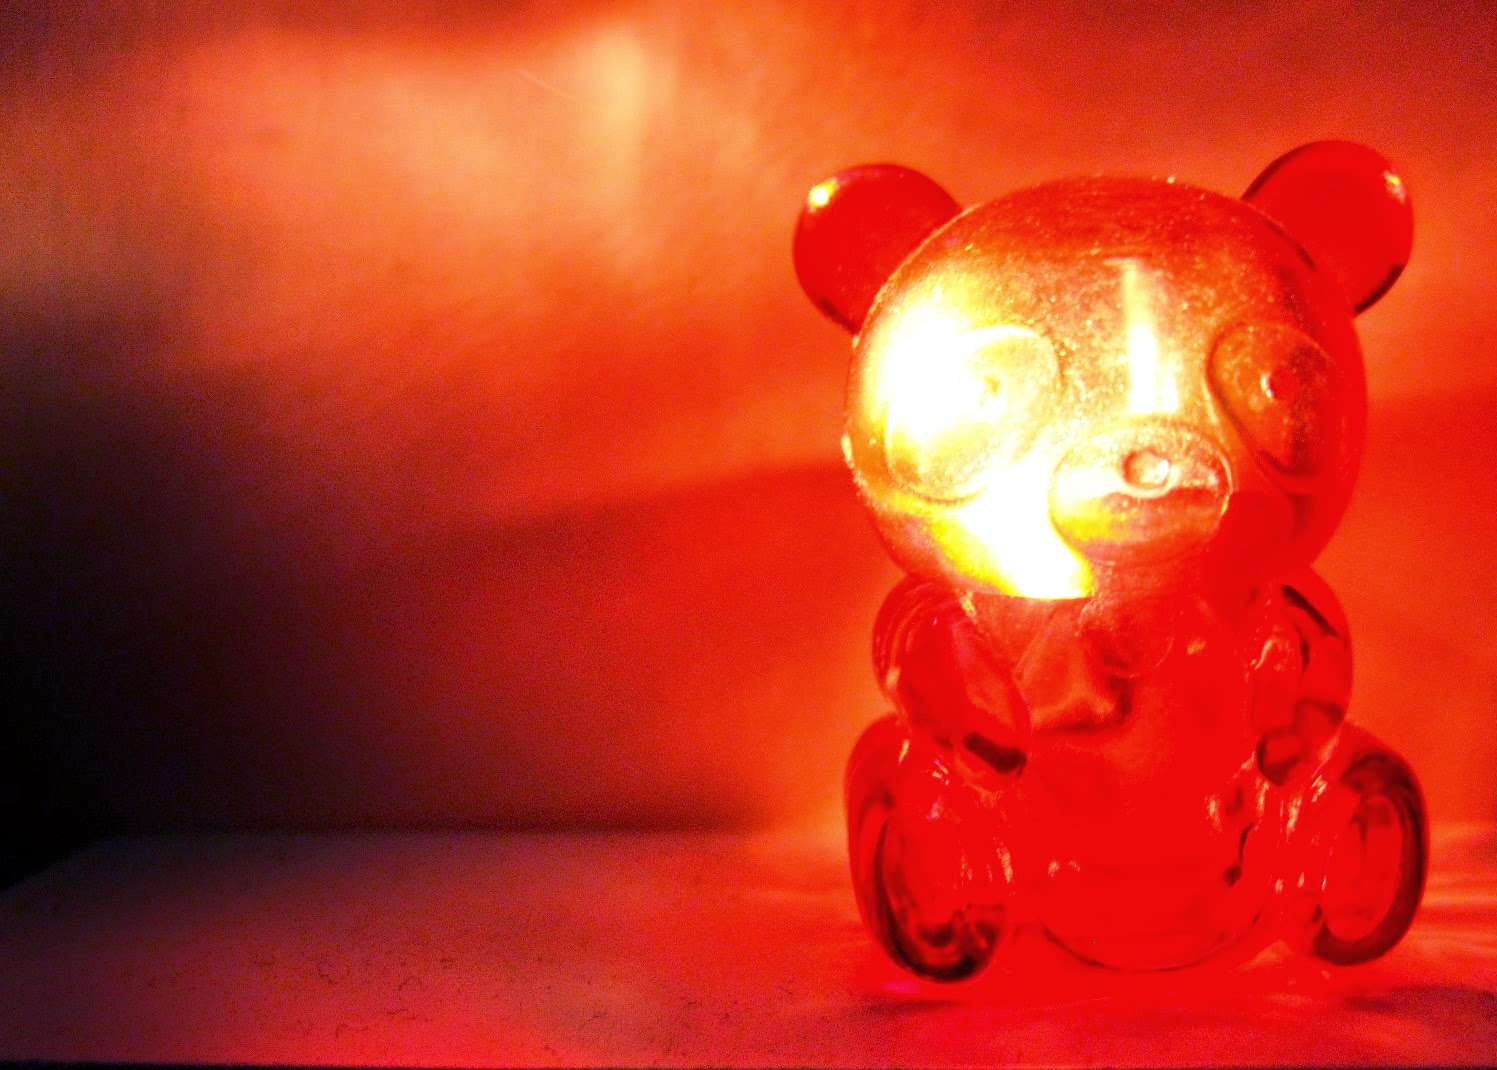 A miniature red plastic bear container. lit up from the inside.